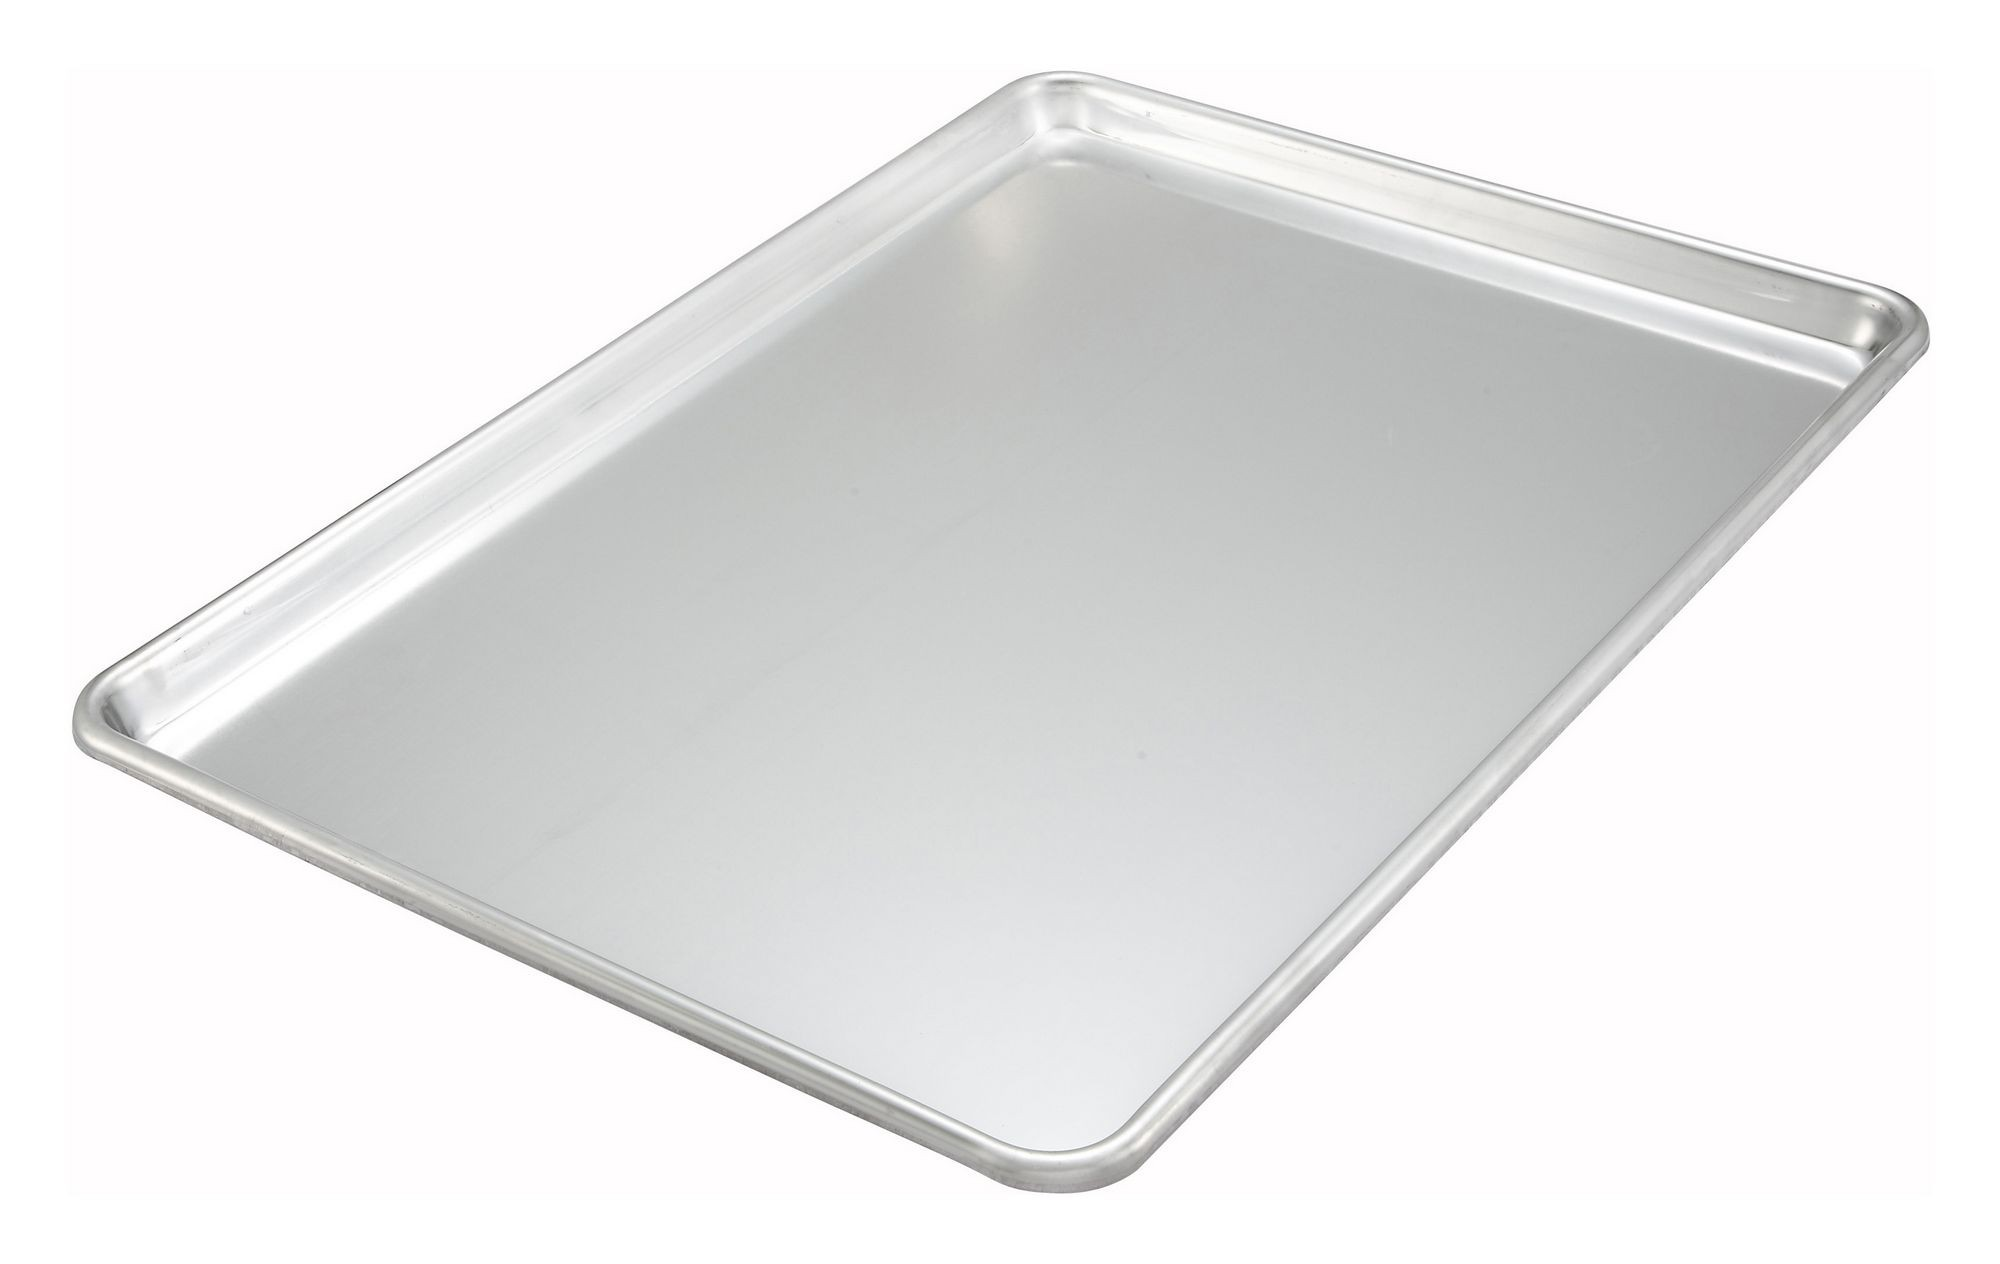 "Winco ALXP-1200 Full-Size Aluminum Sheet Pan, 18"" x 26"""